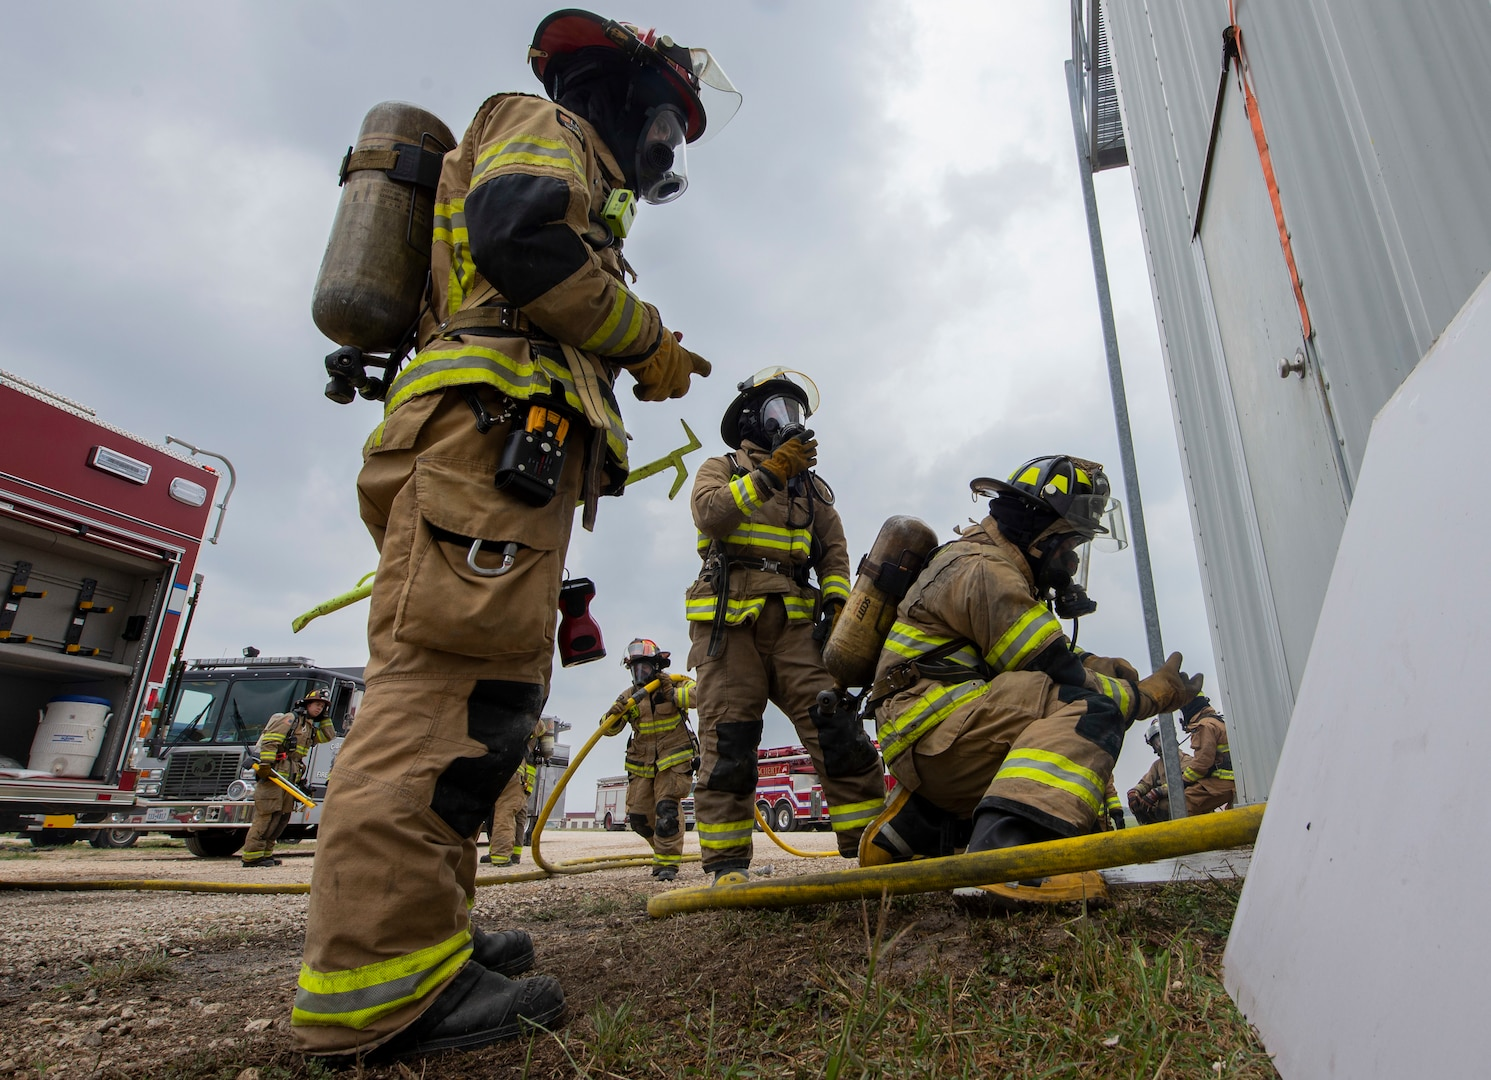 Firefighters from Cibolo Fire Department don gear before responding to a live fire training exercise, April 14, 2021, at Joint Base San Antonio-Randolph, Texas.